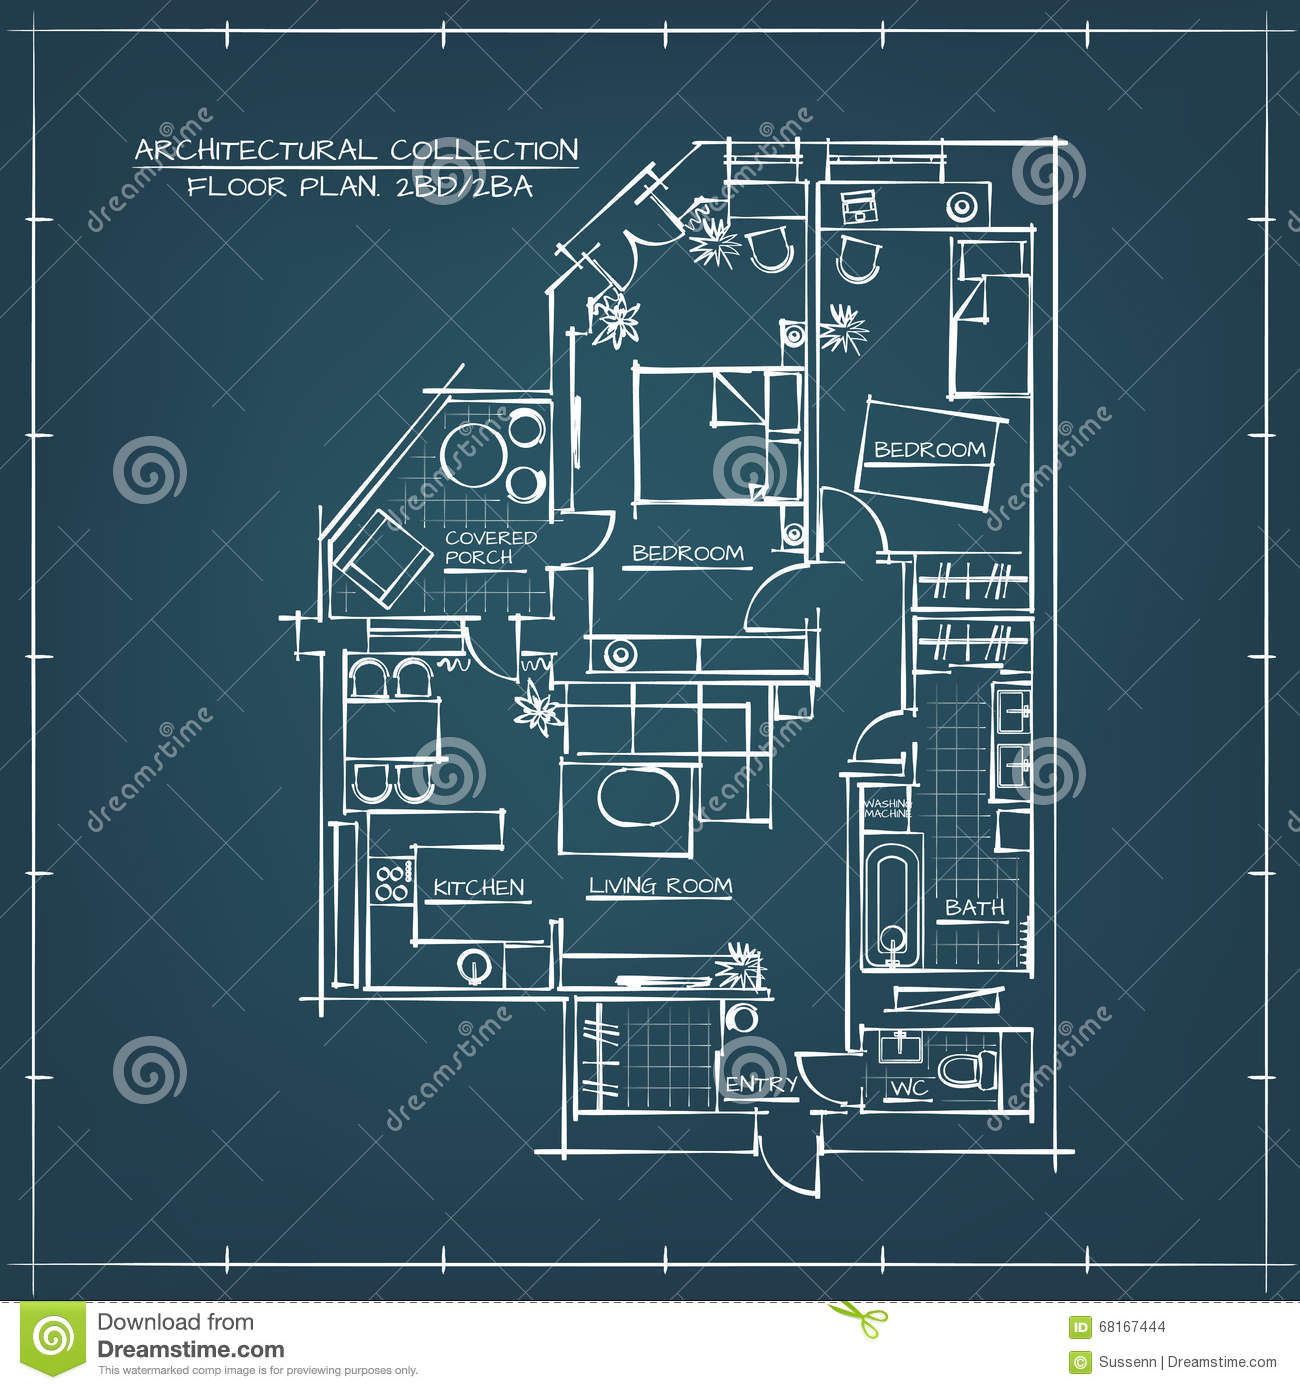 Architectural blueprint floor plan stock vector illustration of architectural blueprint floor plan royalty free vector malvernweather Images